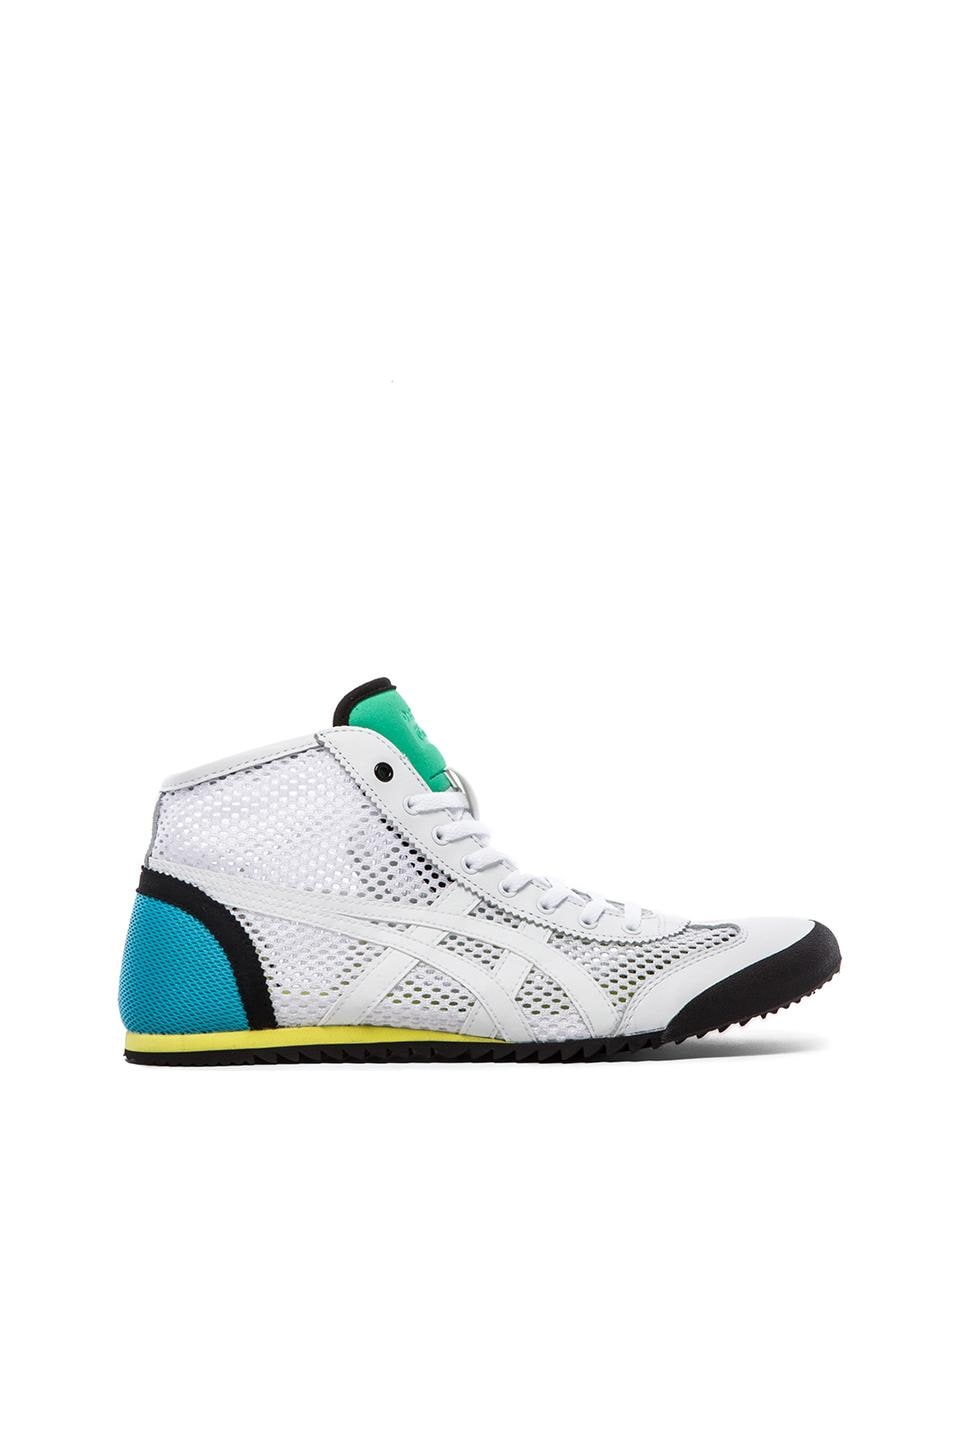 Onitsuka Tiger x Andrea Pompilio Mexico DX Mid in Punching & White